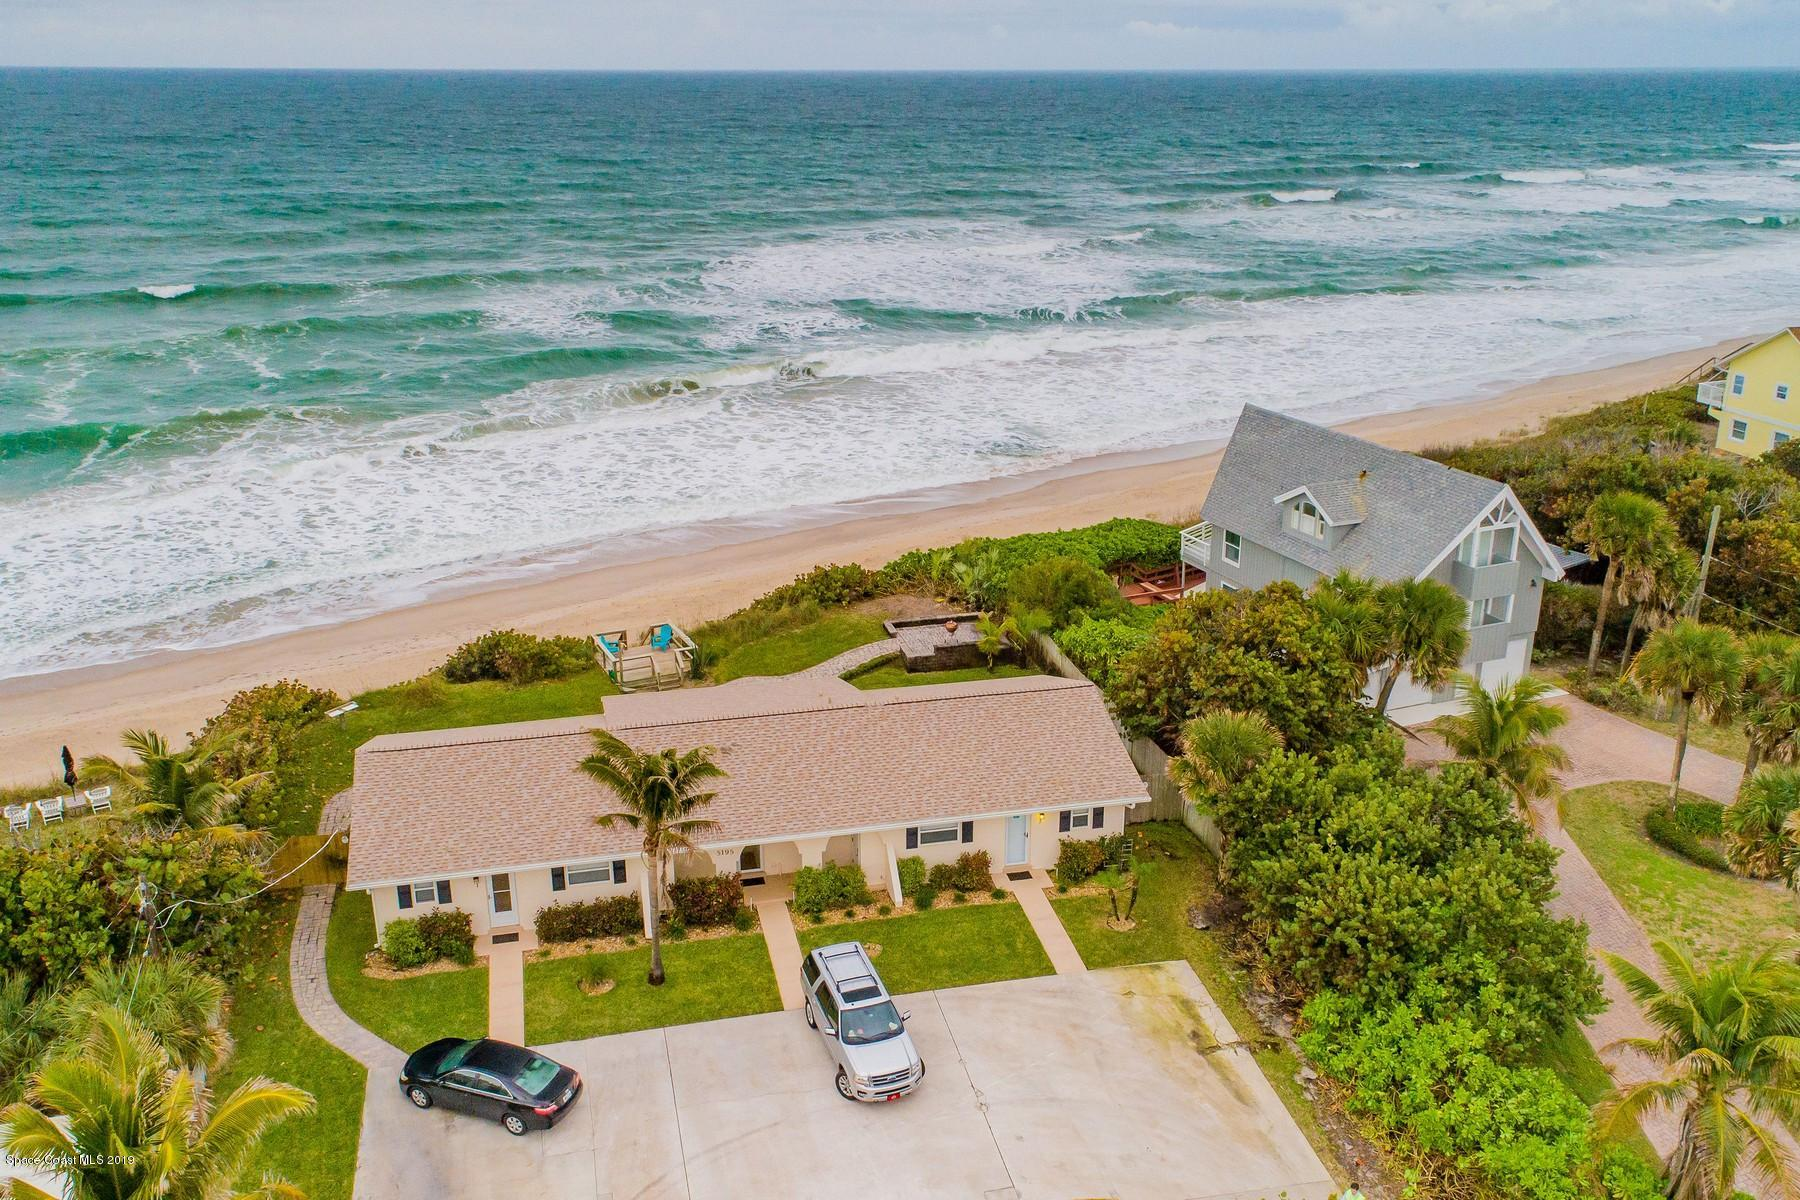 Commercial for Sale at 5195 S Highway A1a 5195 S Highway A1a Melbourne Beach, Florida 32951 United States